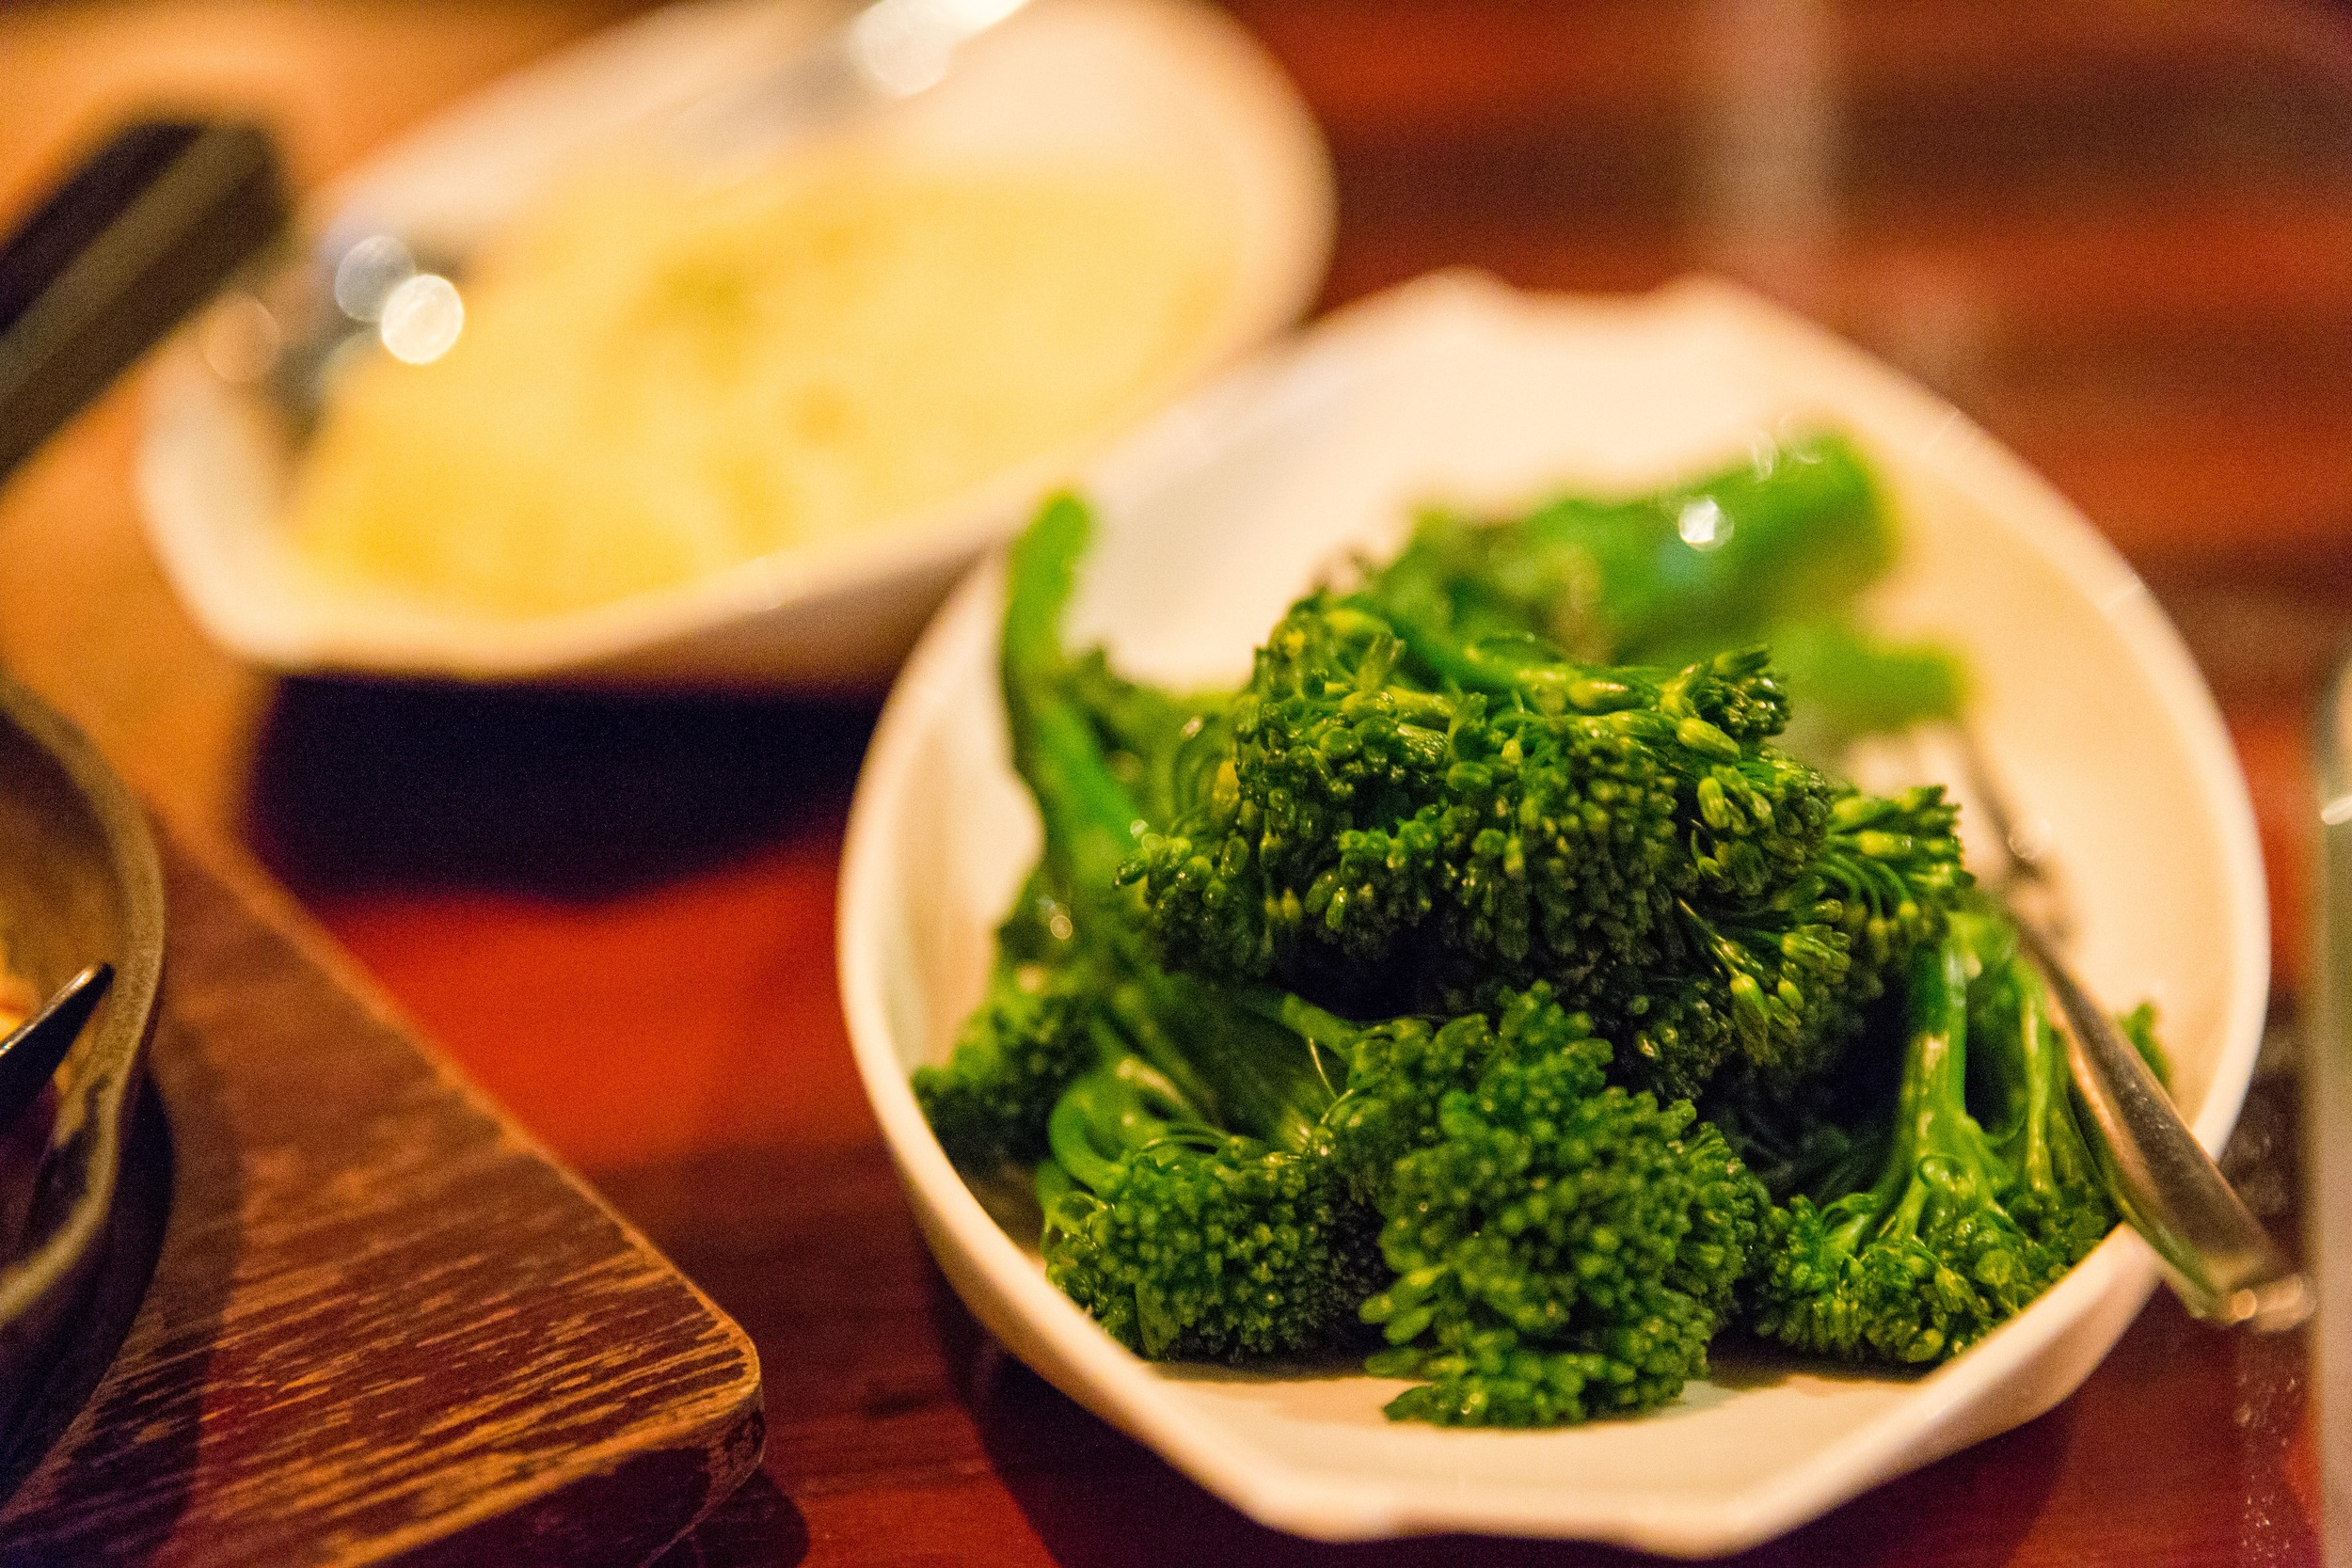 Broccolini and the Truffle Mash in the background